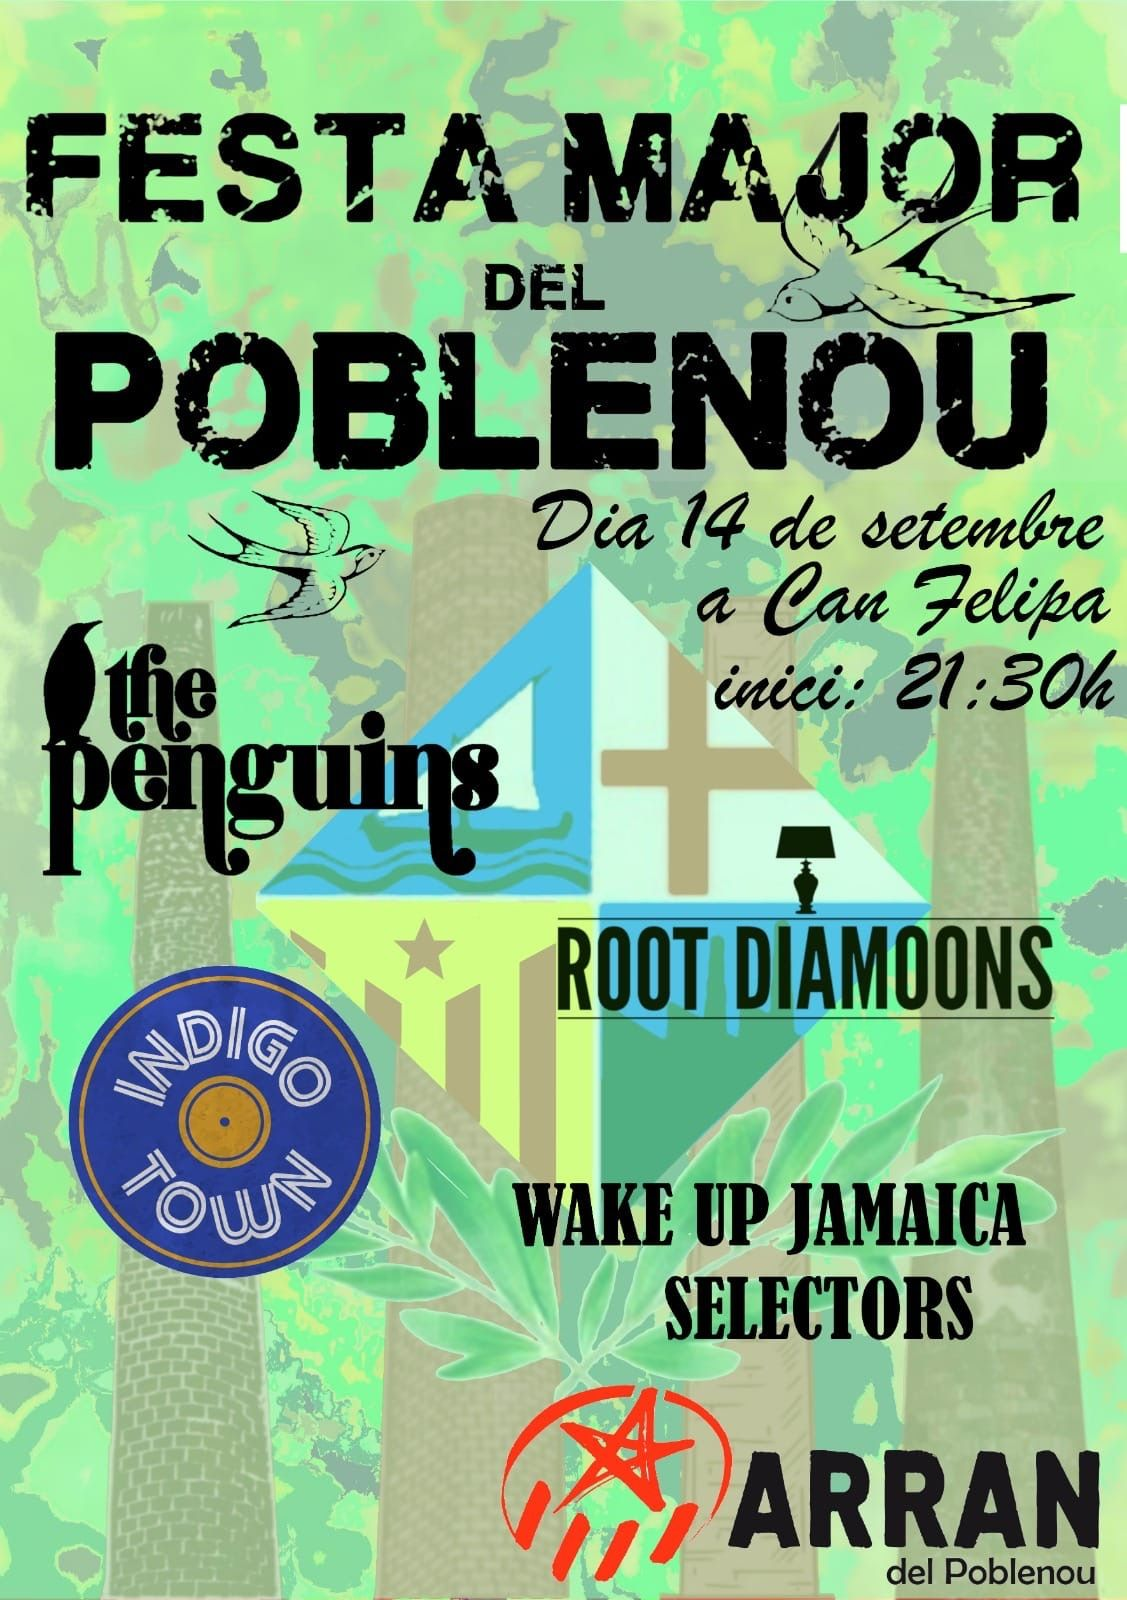 Concert de The Penguins, Root Diamoons, Indigo Town, Wake Up...  - Festa Major de Poble Nou